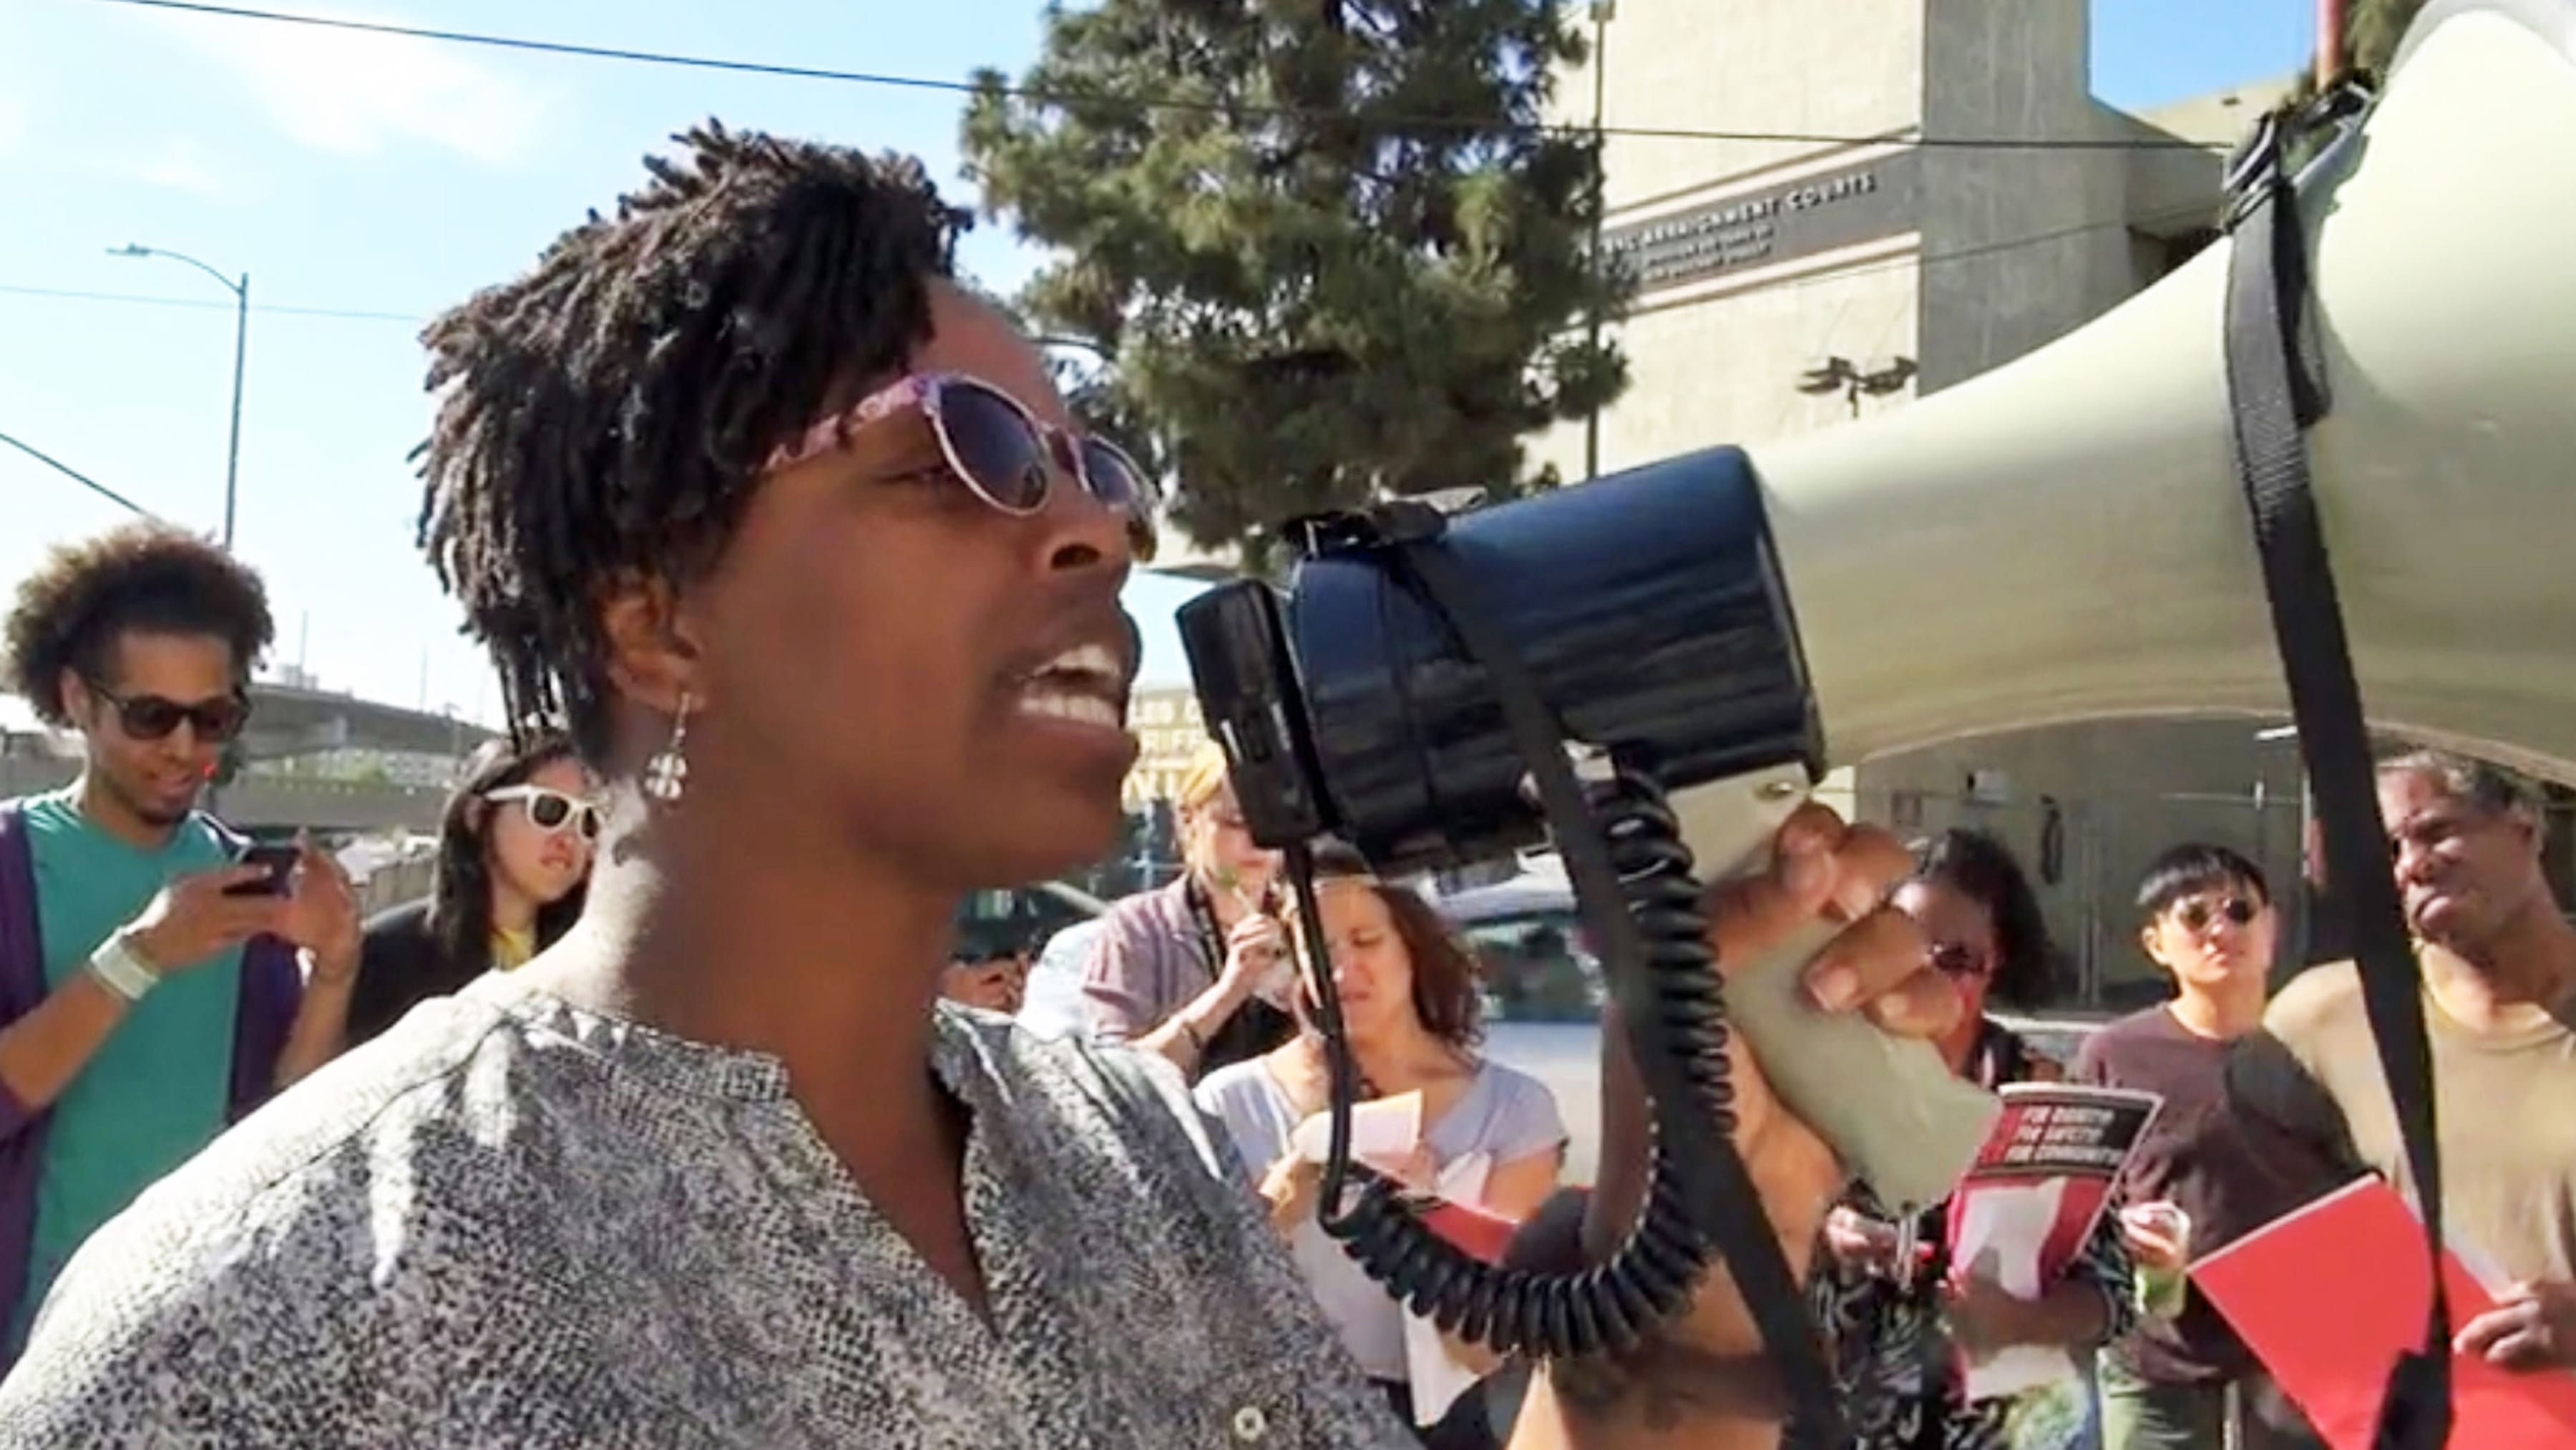 A black woman leads a protest with a loudspeaker